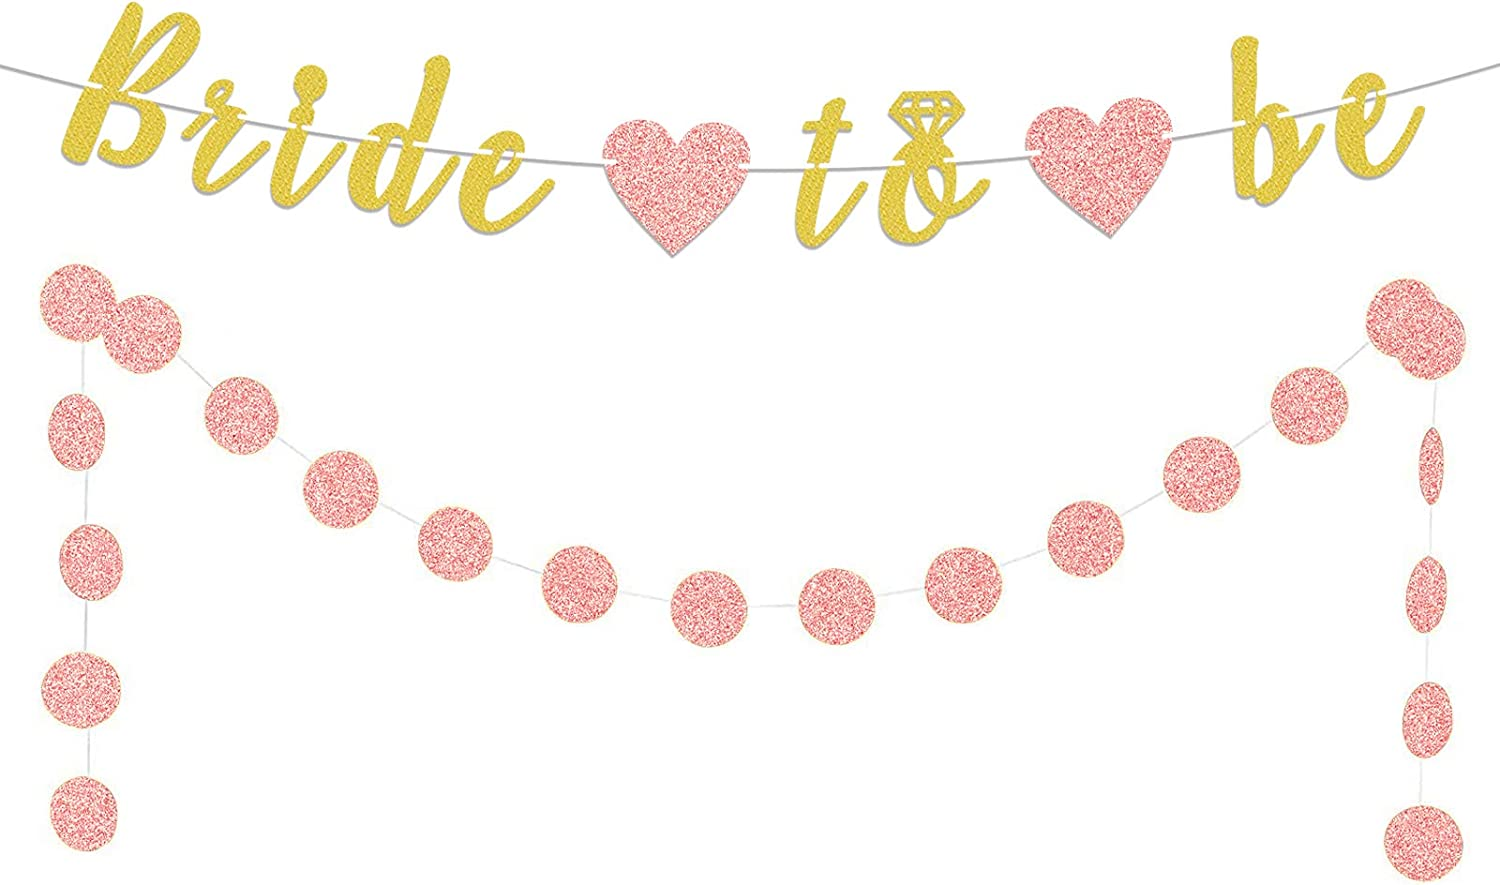 LASKYER Bride to Be Gold Glitter Banner 2pcs Heart with Rose Gold Circle Dots Set Perfect for Wedding Bachelorette Engagement Party Decorations.